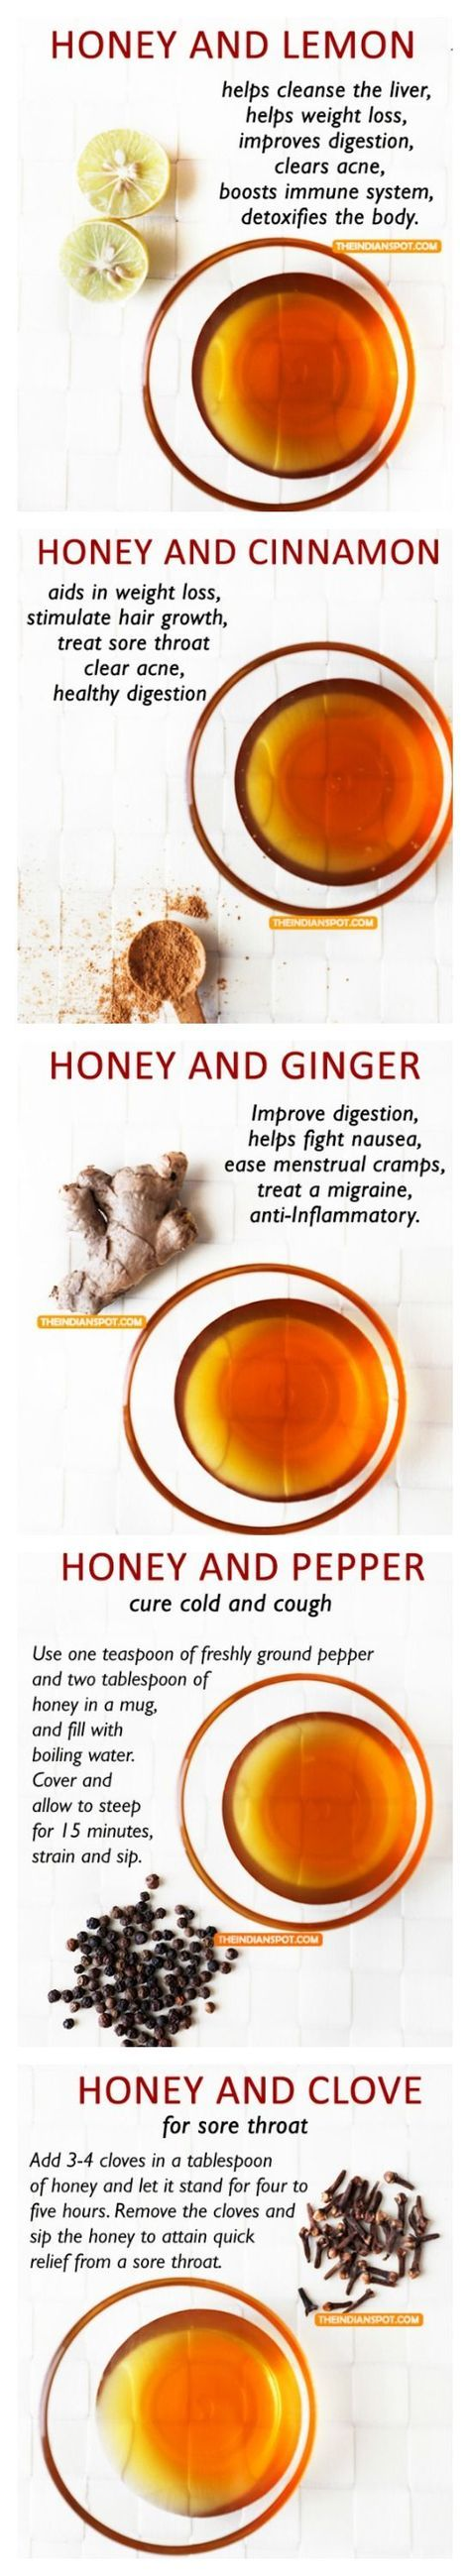 ADD BLACK PEPPER WHEN USING TURMERIC IT HELPS THE BODY ABSORB BETTER AND YOU WON'T NOTICE THE TASTE,ADD HONEY,1 TBSP'PLUS 1/4 TSP.S GINGER,TURMERIC AND CINNAMON, MIX TO A PASTE,1/4 FILL CUP WITH COLD WATER ADD A SQUEEZE OF LEMON AND TSP'APPLE CIDAR VINEGAR,STIR TO MIX WELL,FILL CUP UP WITH BOILED/V.HOT WATER,DRINK WHILST HOT,ADJUST TASTE USING HONEY OR MAPLE SYRUP (PURE/LOCAL )FITS ALL AILMENTS AND IMPROVE IMMUNE SYSTEM,MORNING AND NIGHT DRINK ,NO NEED FOR FLU VACCINE WITH THIS REMEDY.